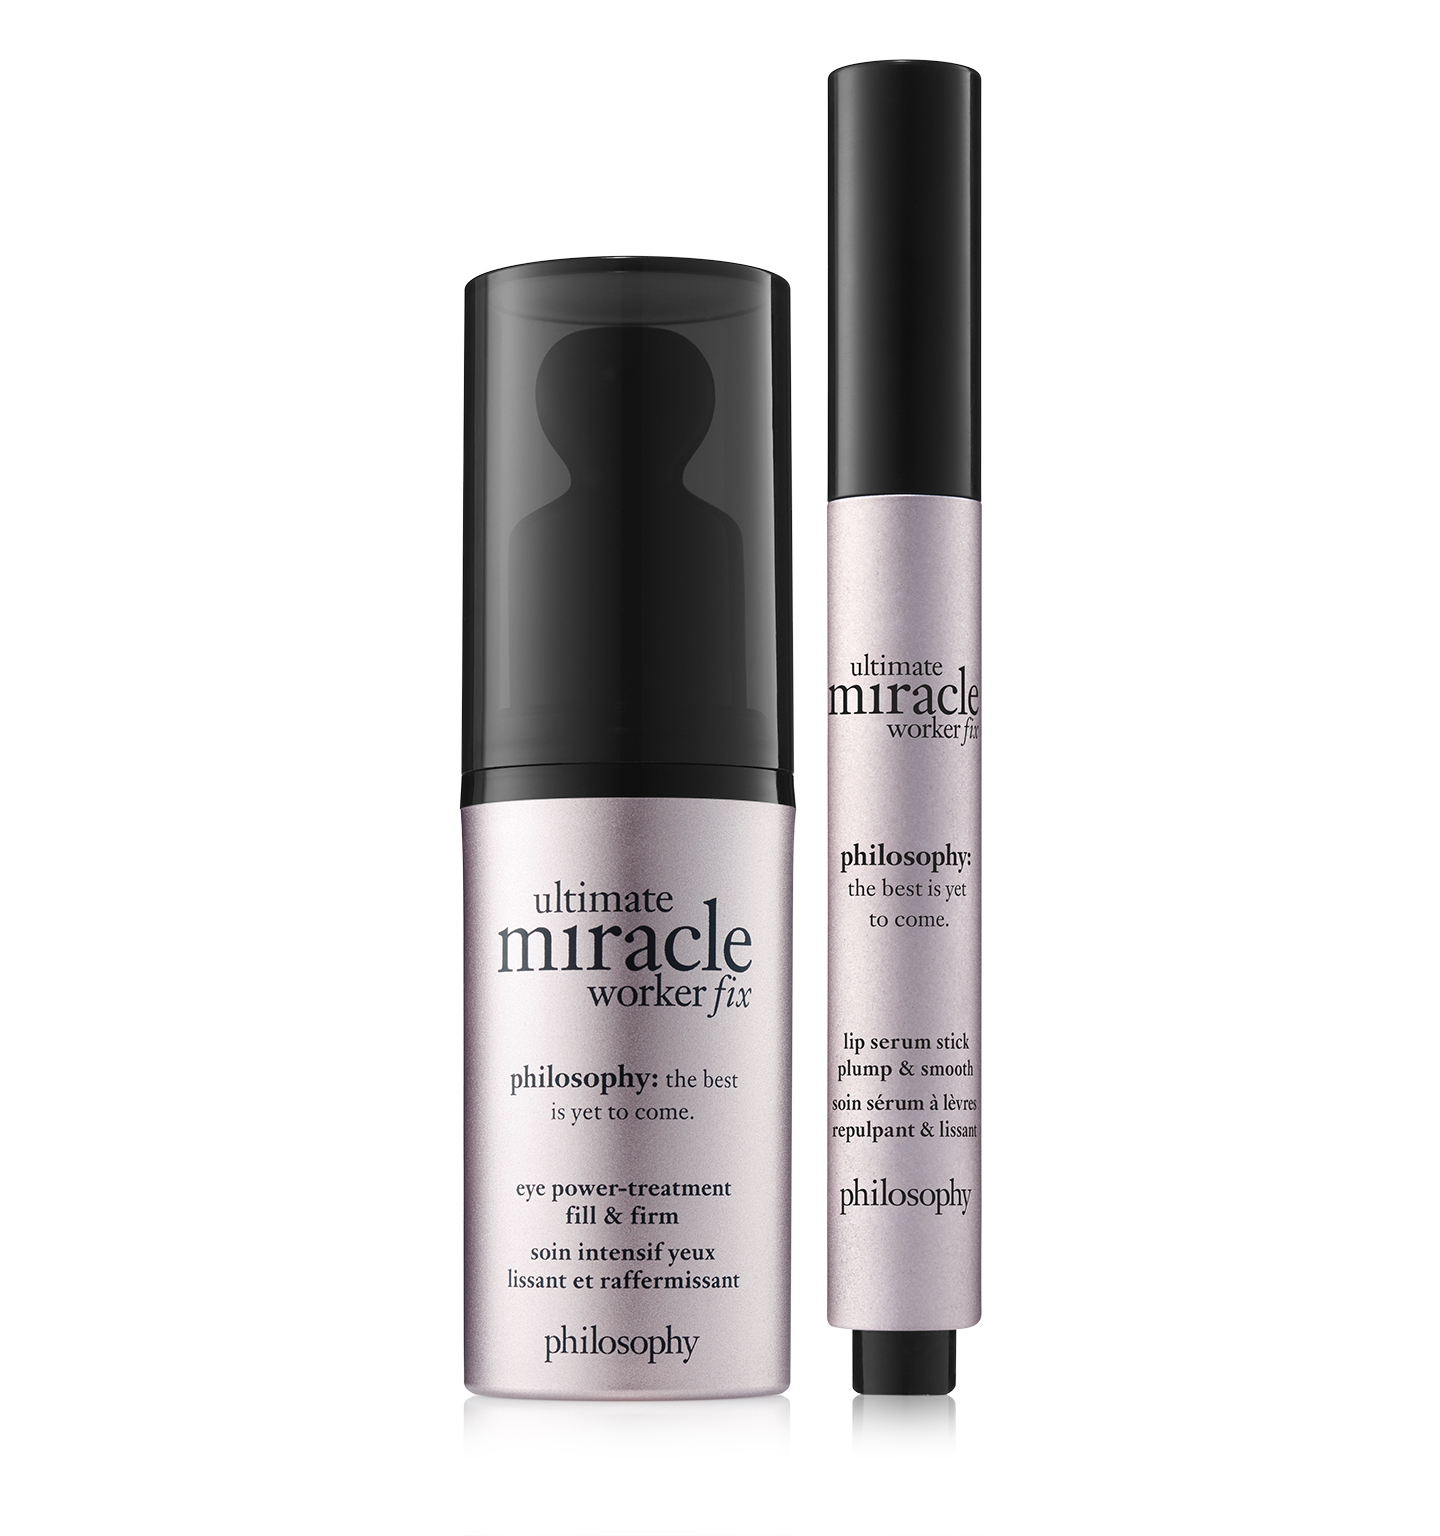 ulimate miracle worker fix eye & lip treatment duo